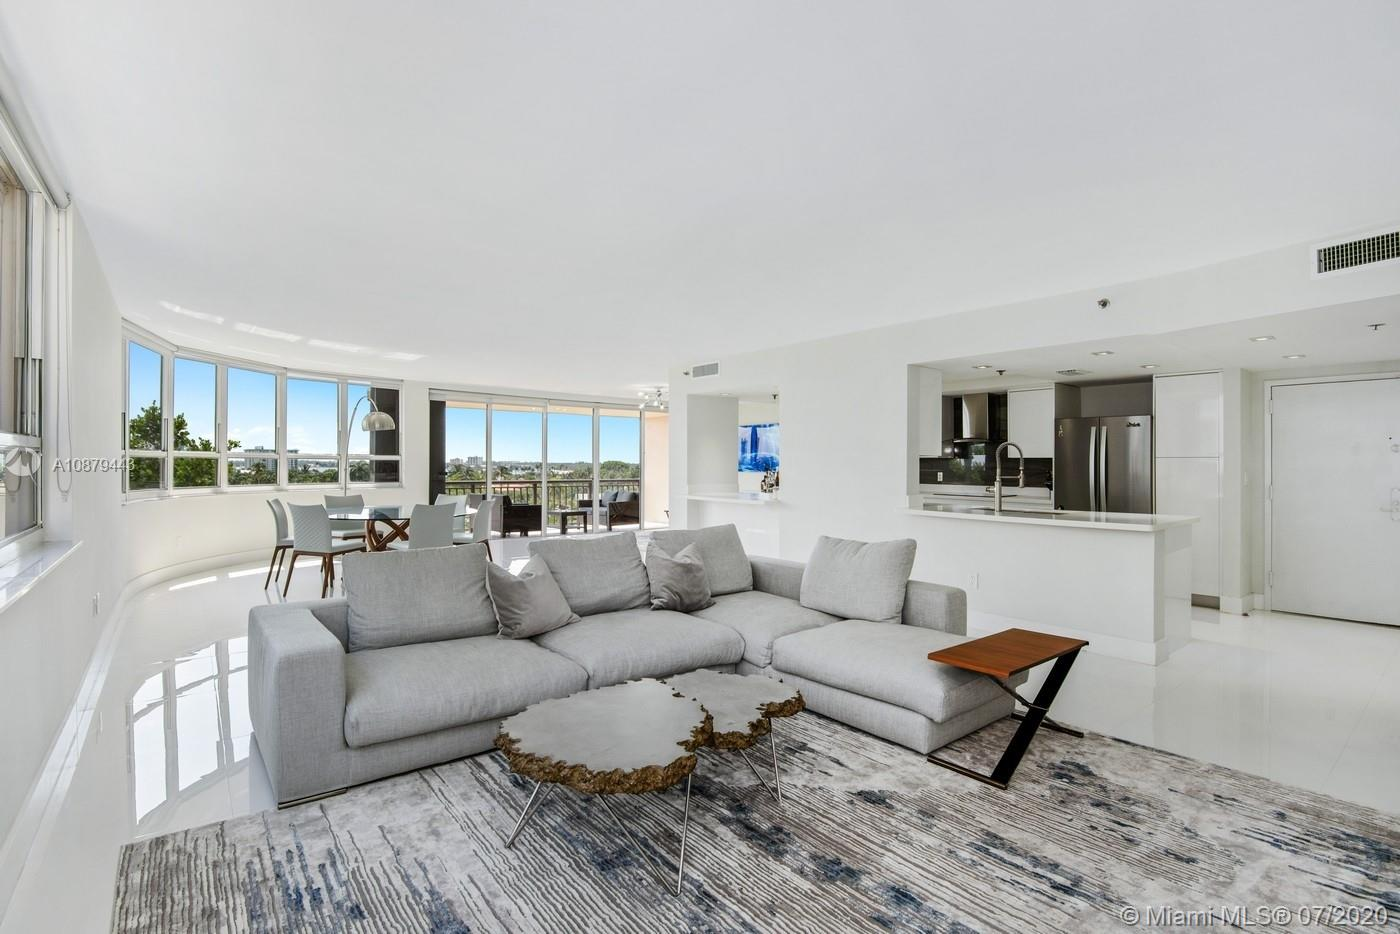 Tiffany #508 - 10175 Collins Ave #508, Bal Harbour, FL 33154